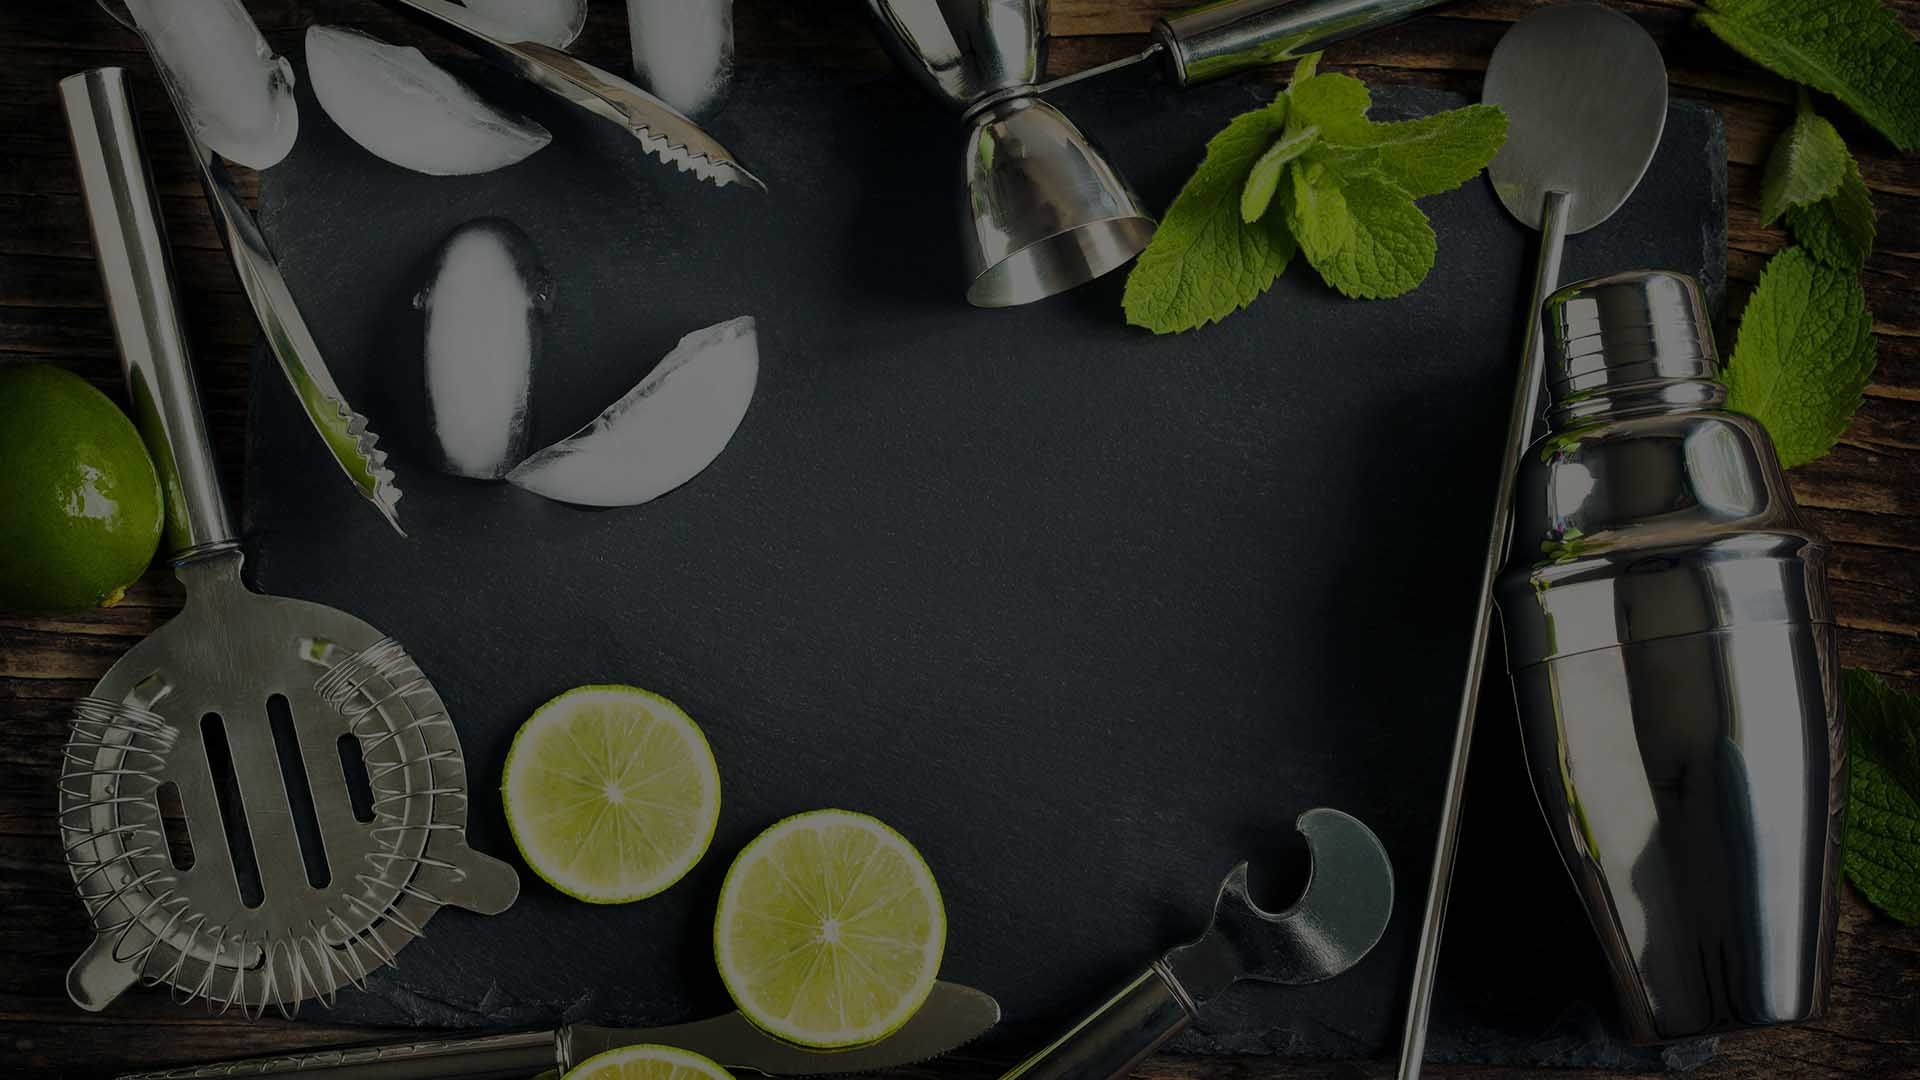 Slate with food and cooking utensils on it